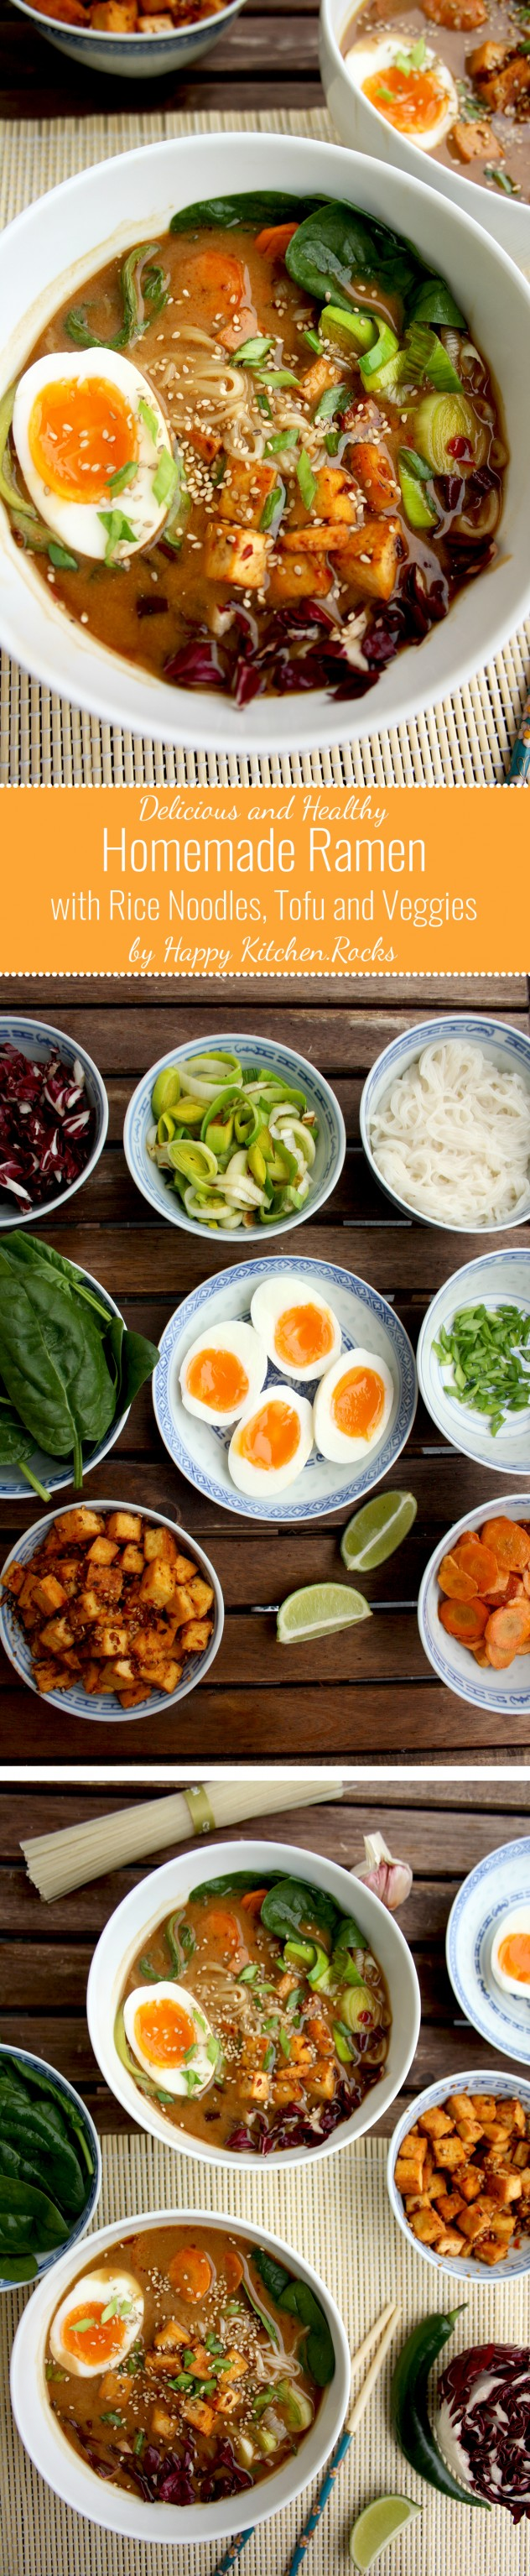 Healthy Ramen with Rice Noodles, Spicy Tofu, Lots of Veggies and Soft-Boiled Eggs: A great gluten-free and healthy homemade alternative to restaurant ramen